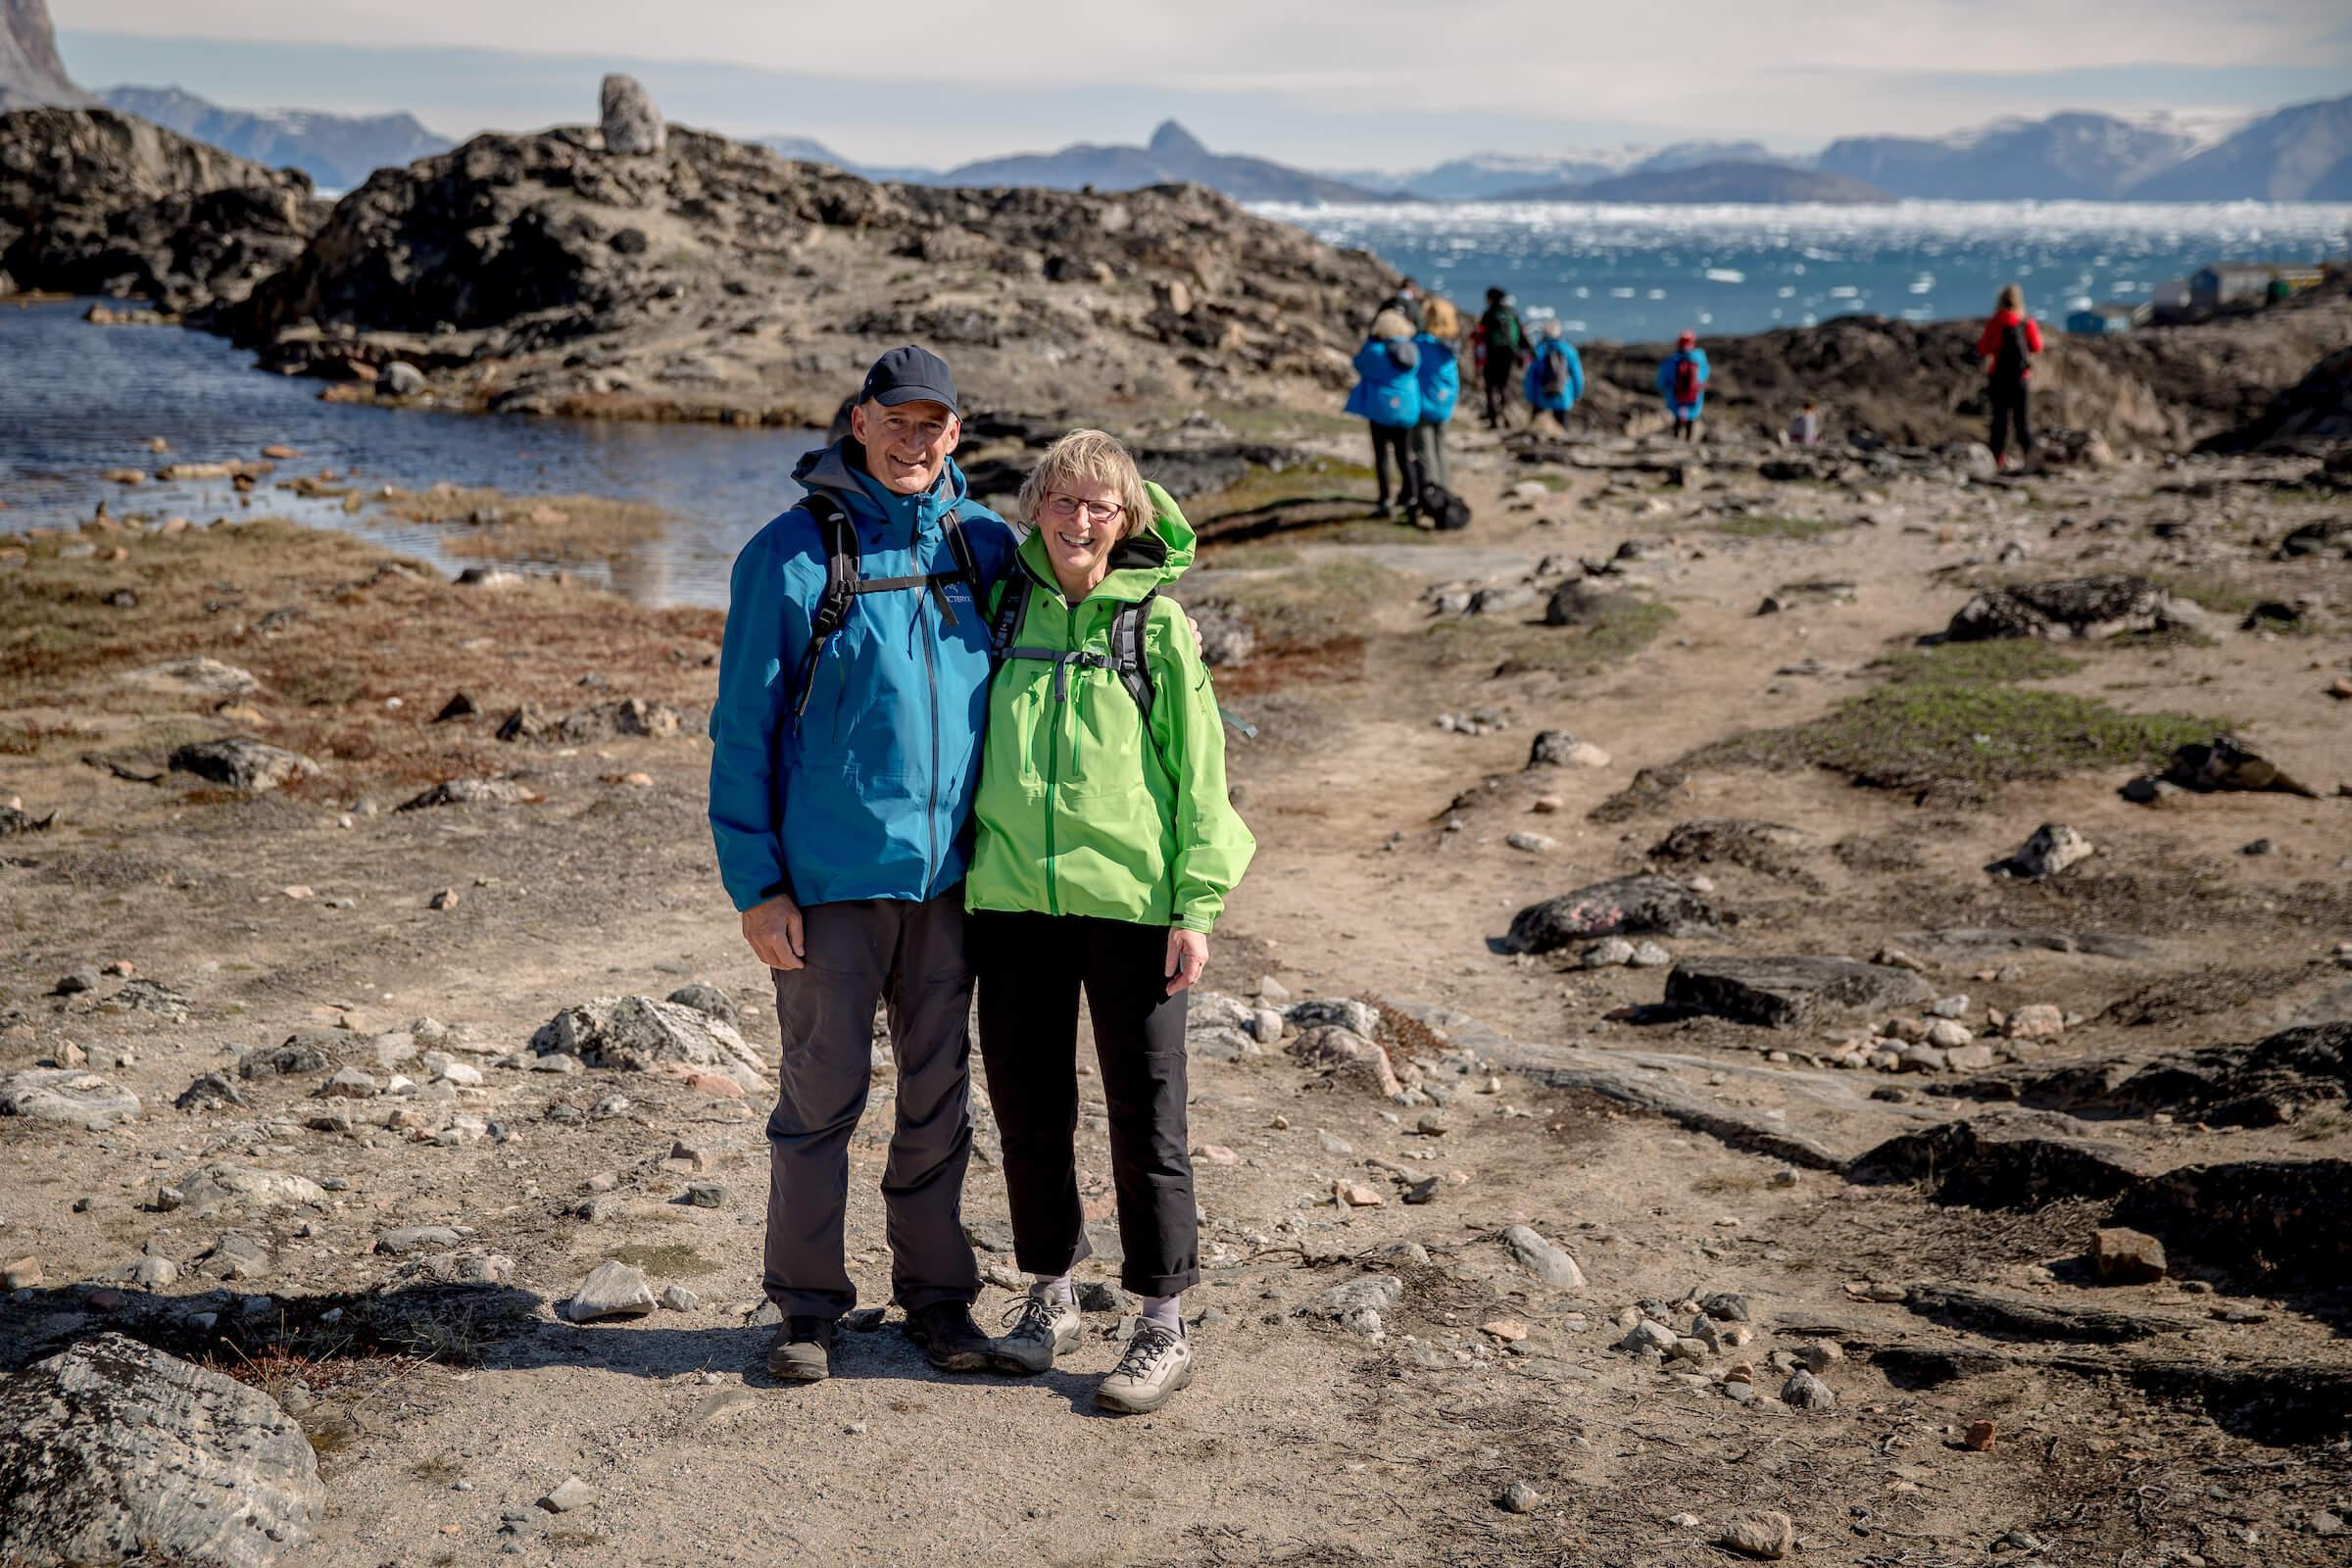 A couple hiking outside Uummannaq in Greenland. By Mads Pihl